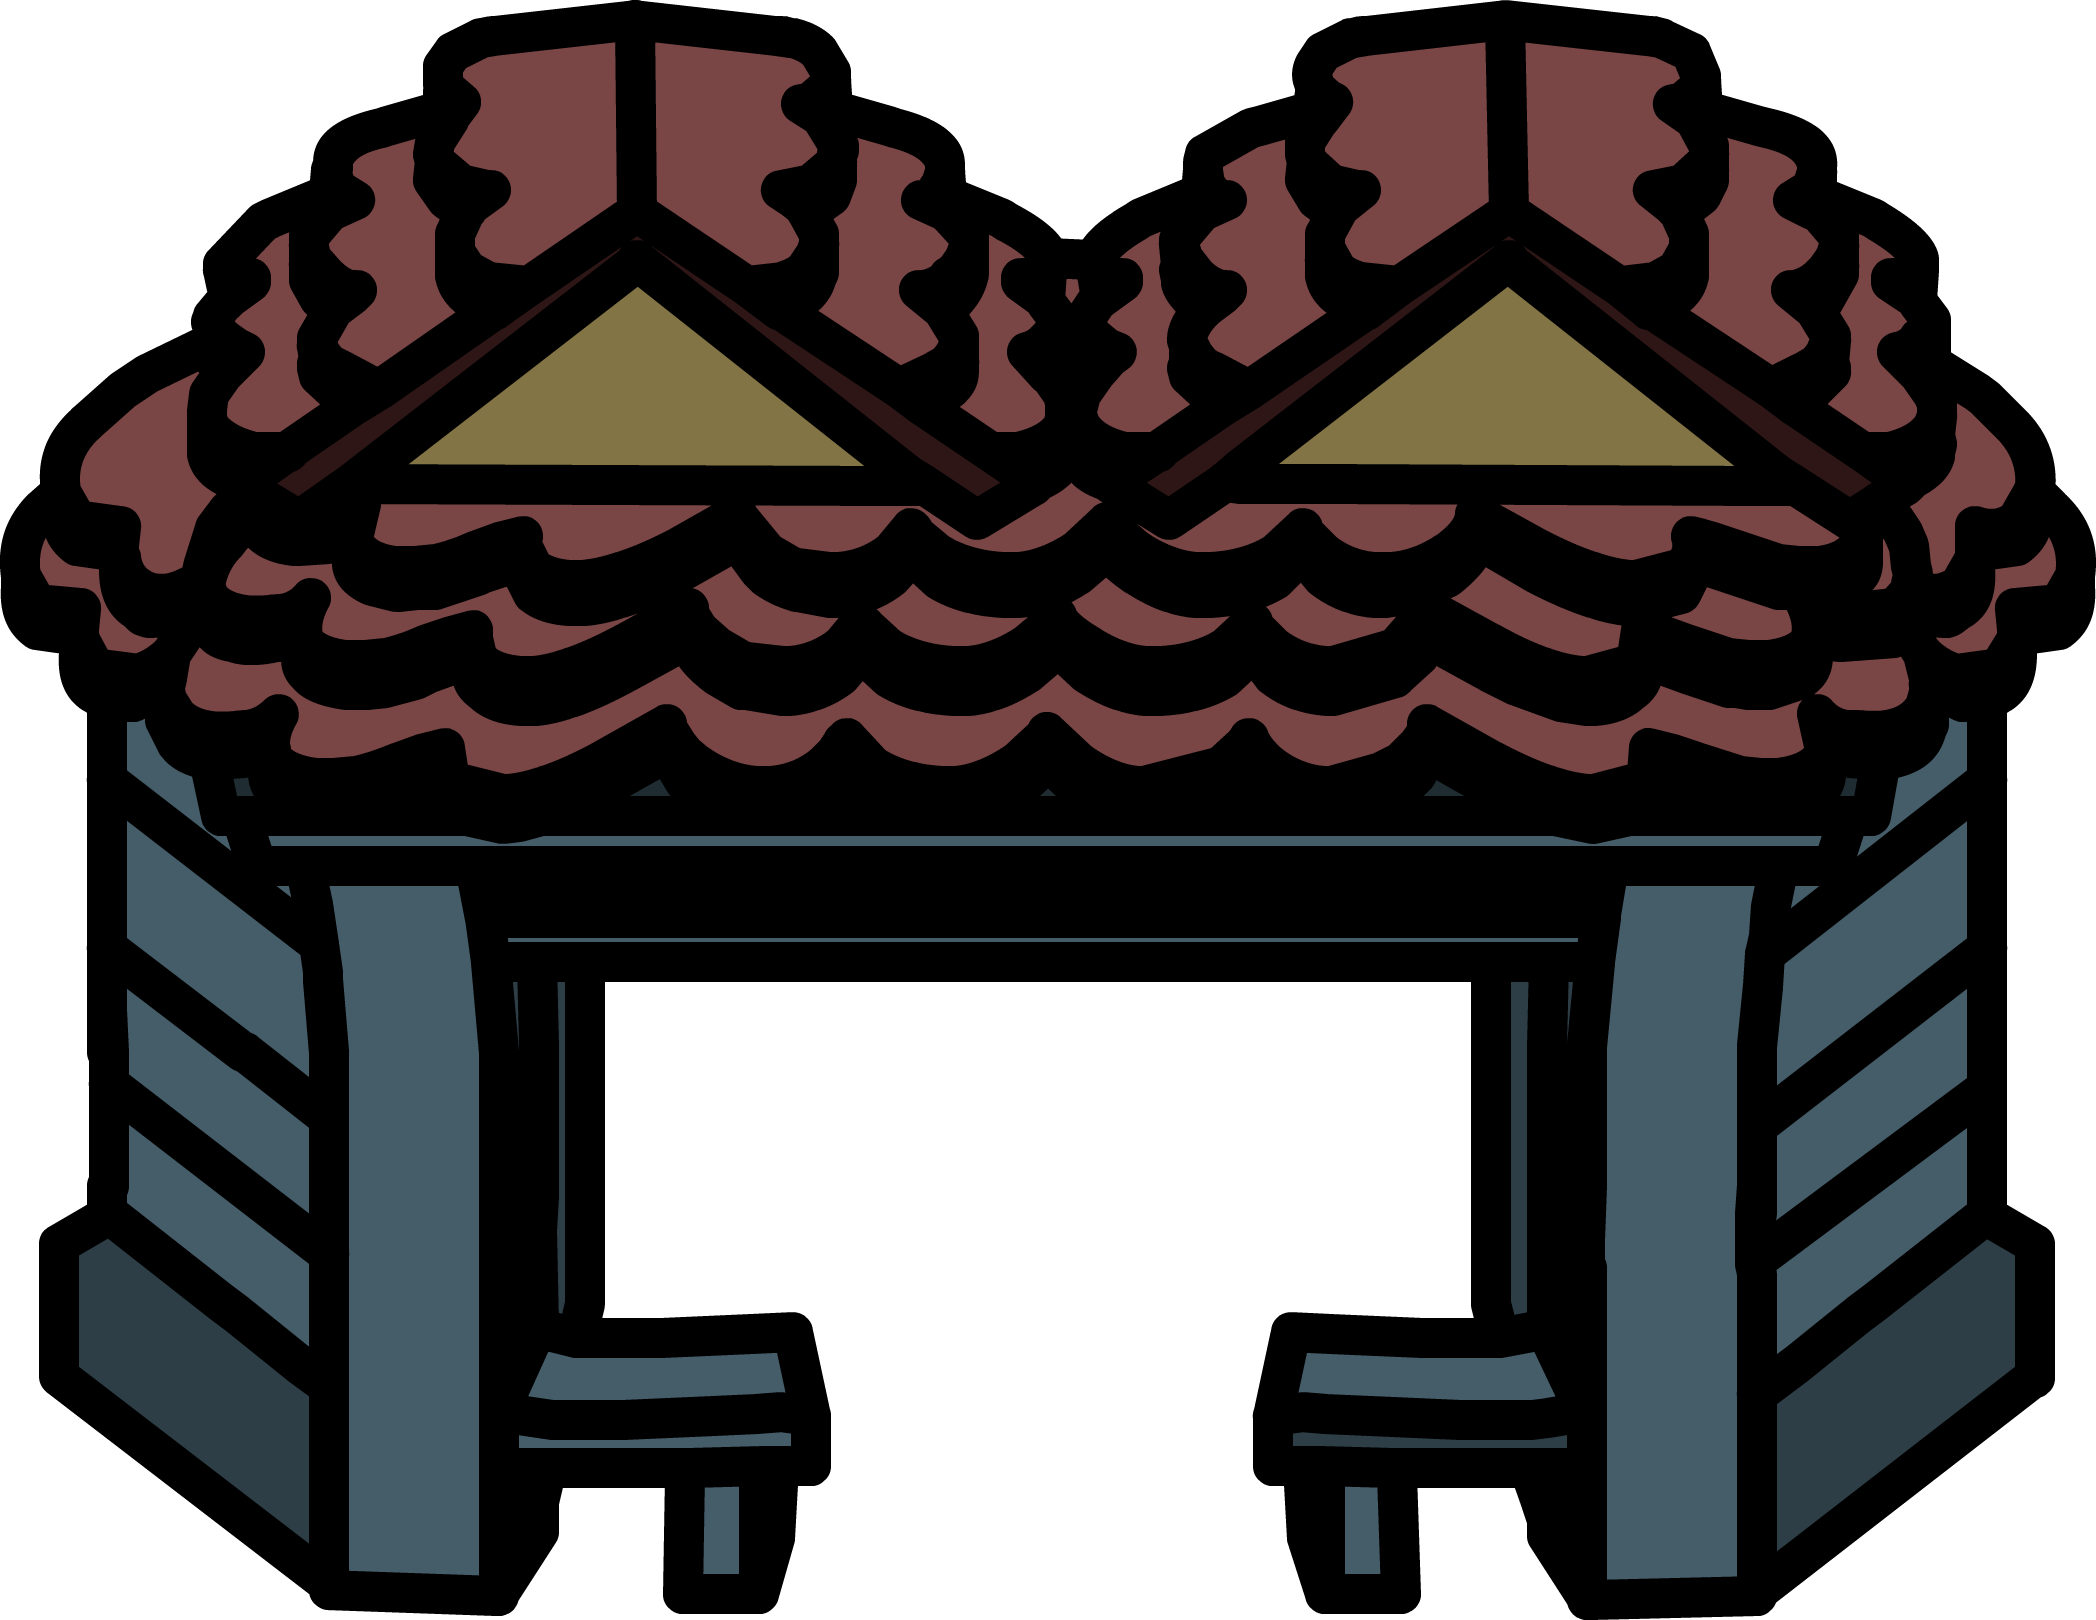 Furniture clipart house furniture. Haunted entrance club penguin